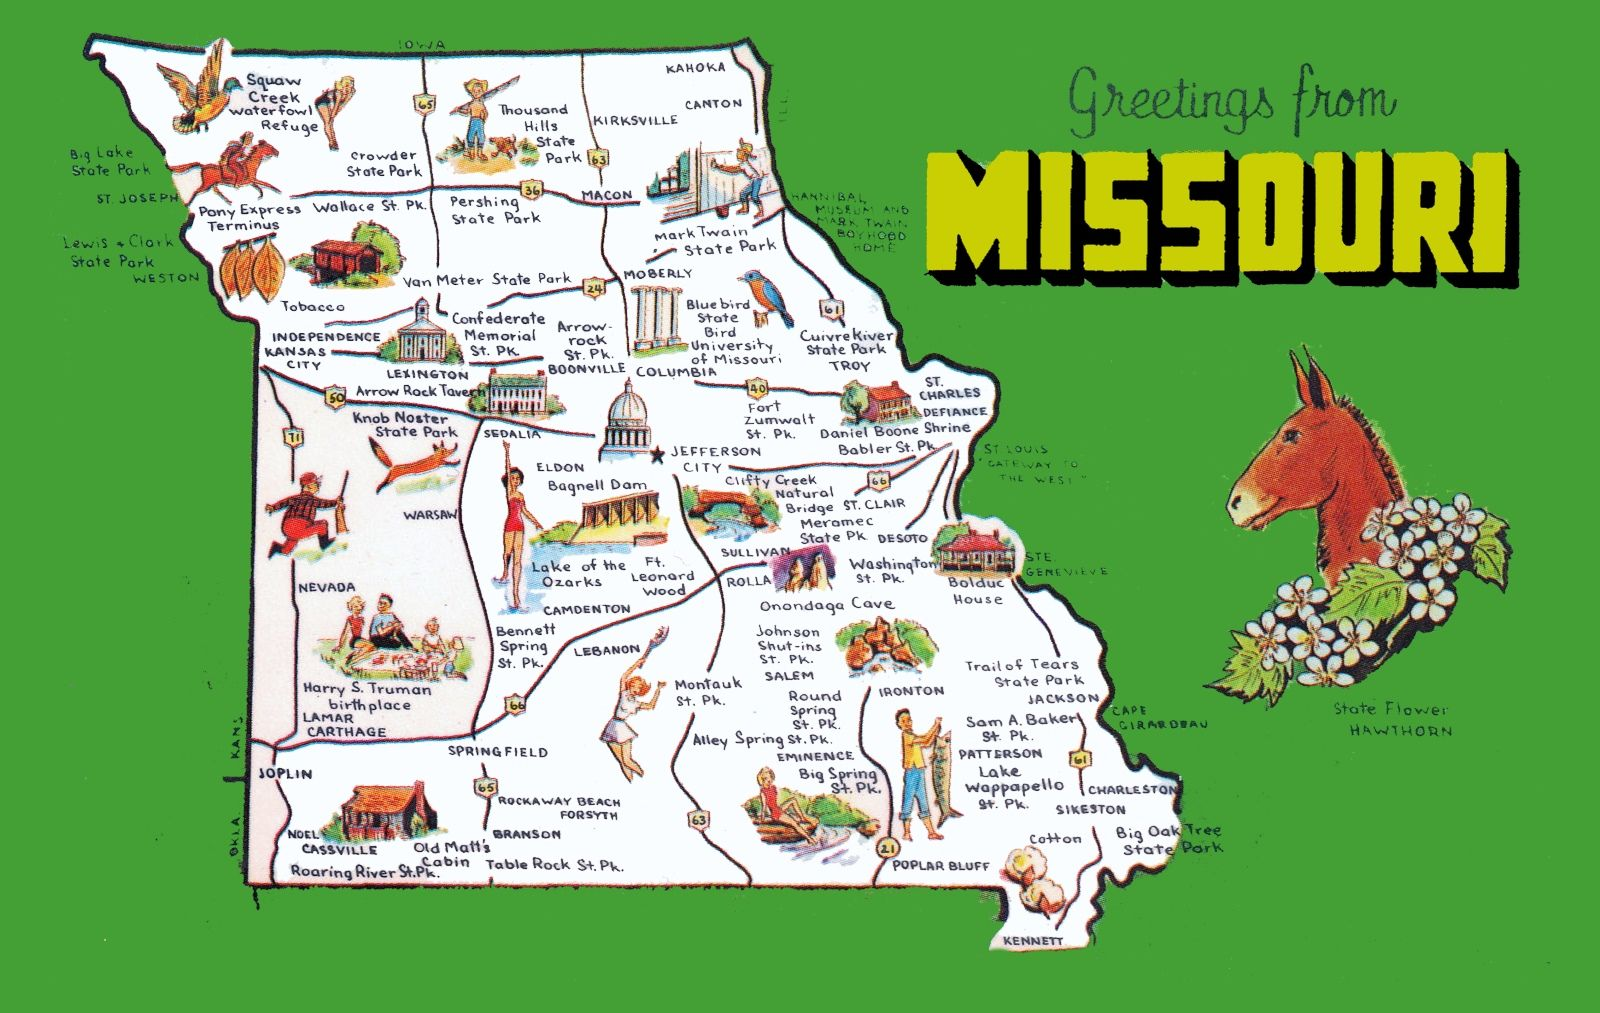 Pictorial travel map of Missouri | Favorite Places & Spaces in 2019 on park map, proportional symbol map, new york city map, russia map, concept map, united states map, city of merrill wi map, europe map, you are a star, travel map, contact us map, belgium map, texas landform map, san antonio district map,